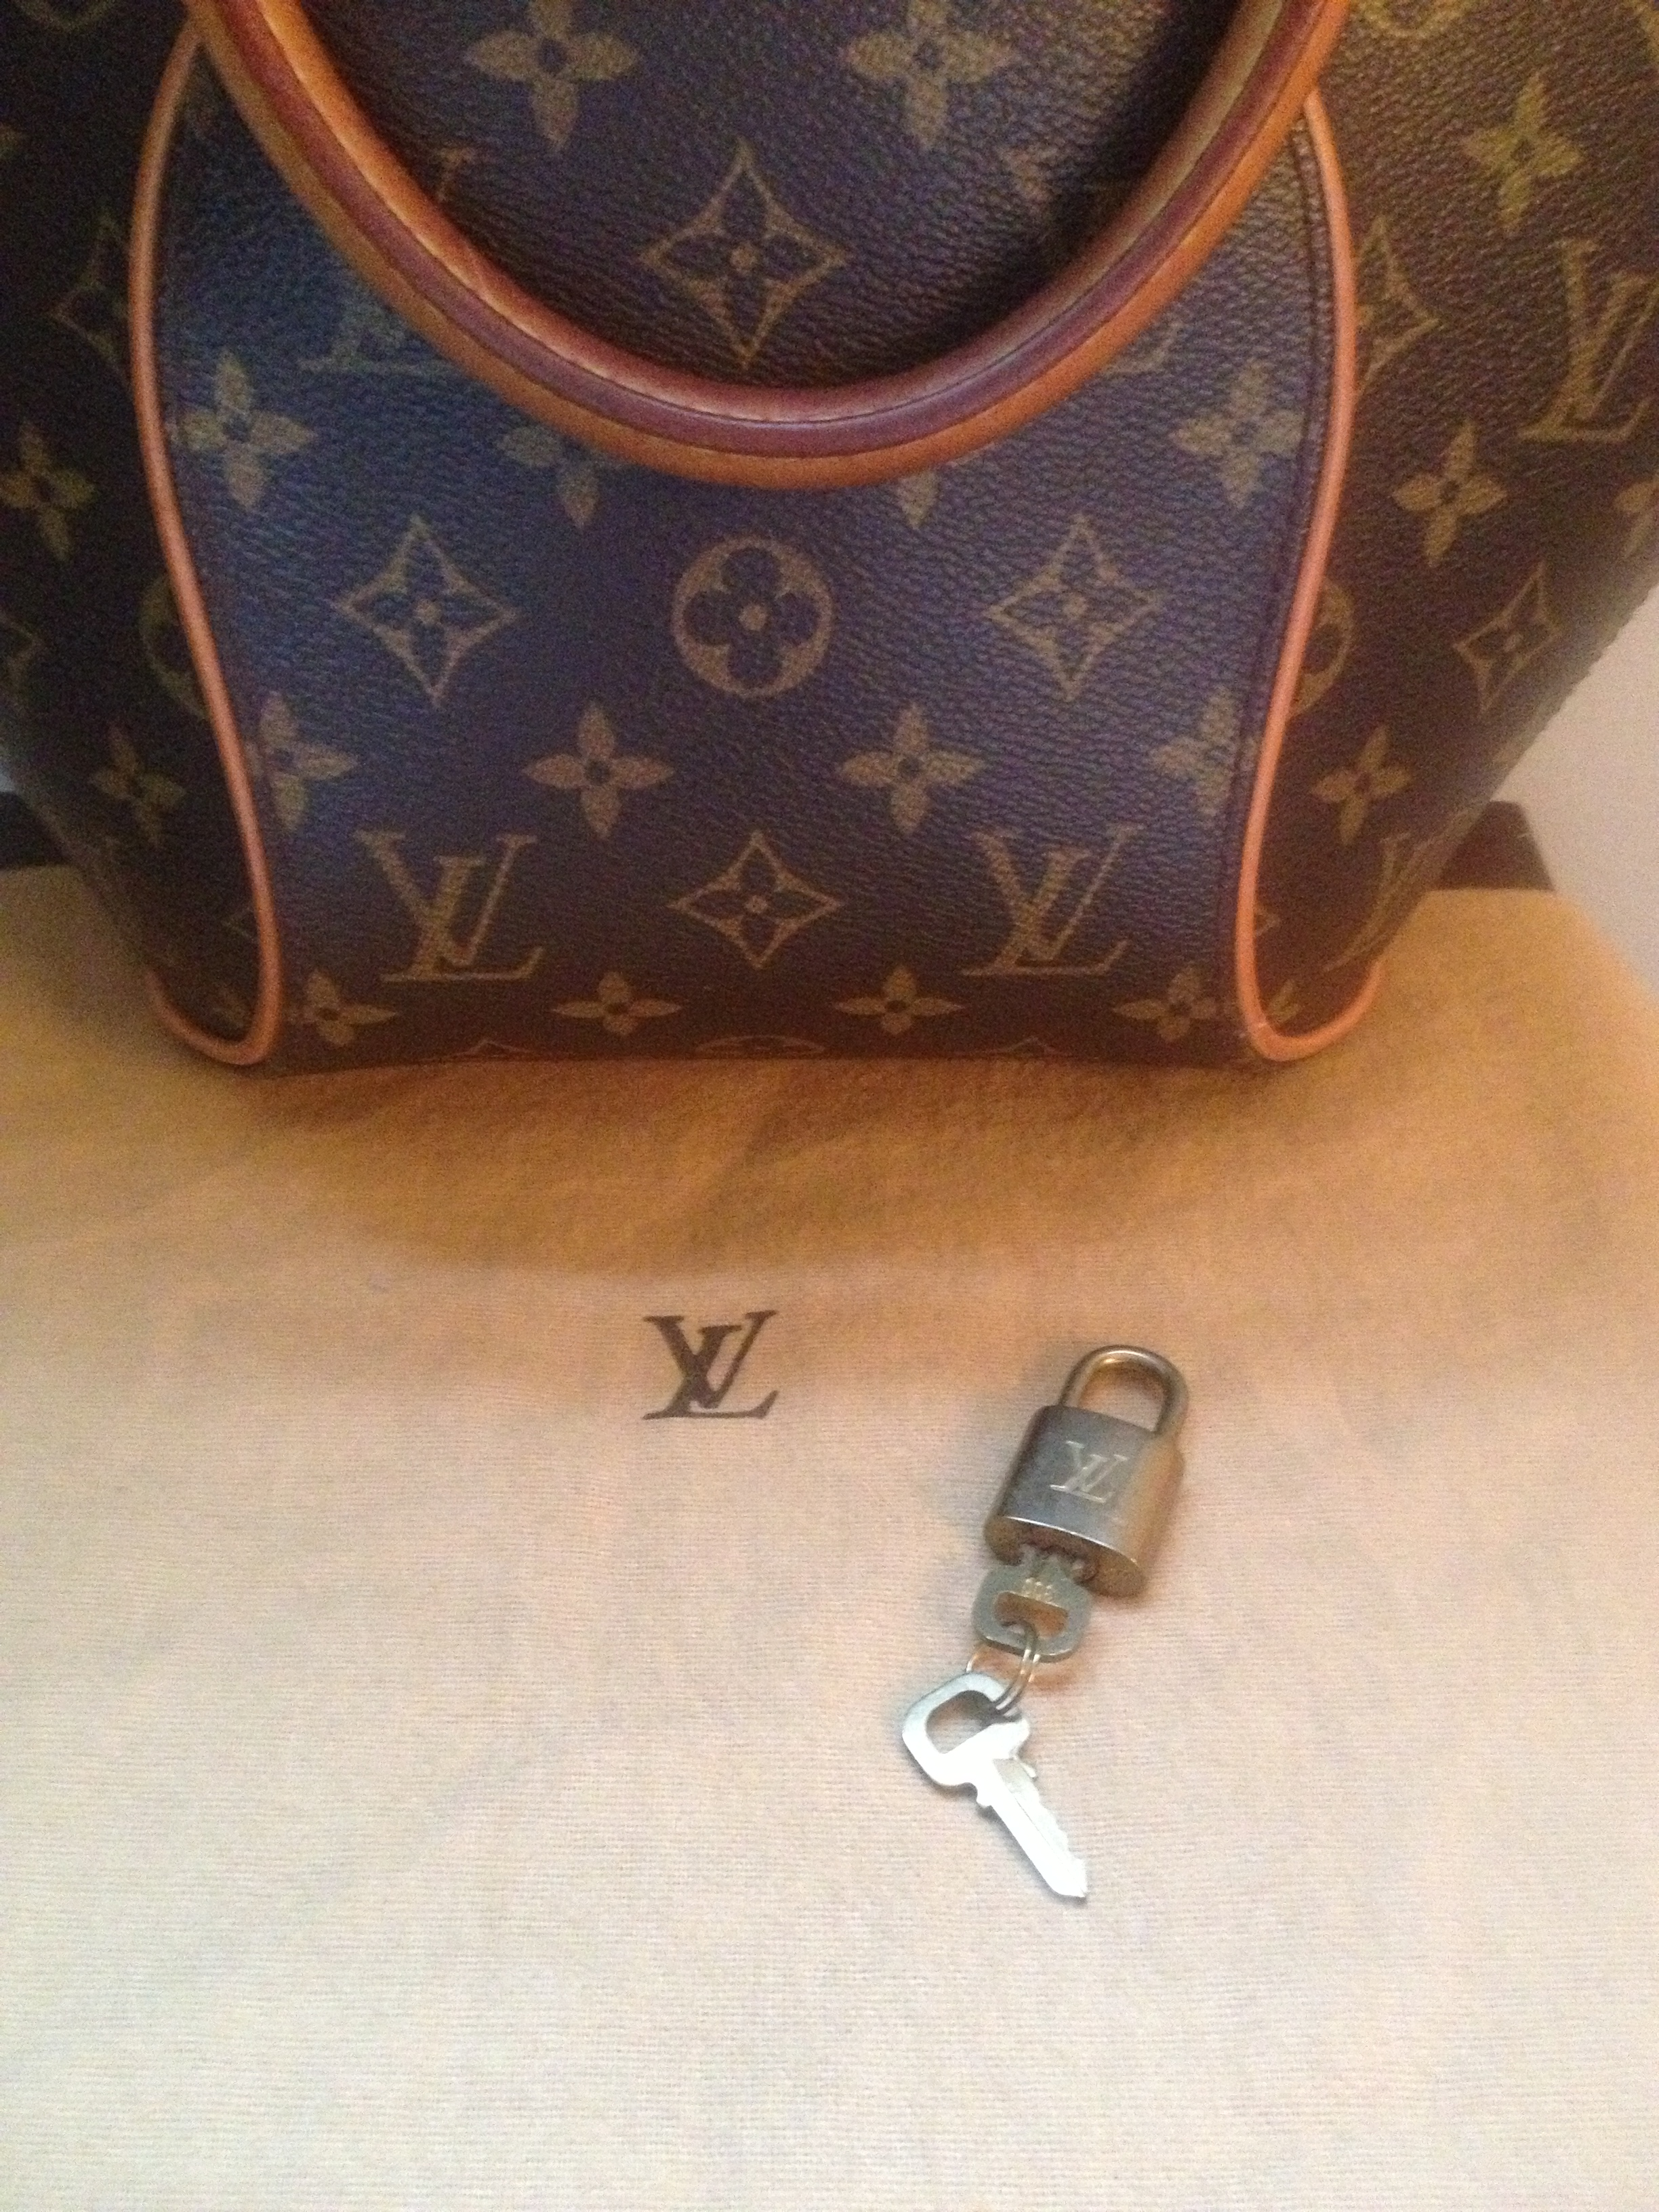 870a11b194f6 Authentic Louis Vuitton Store